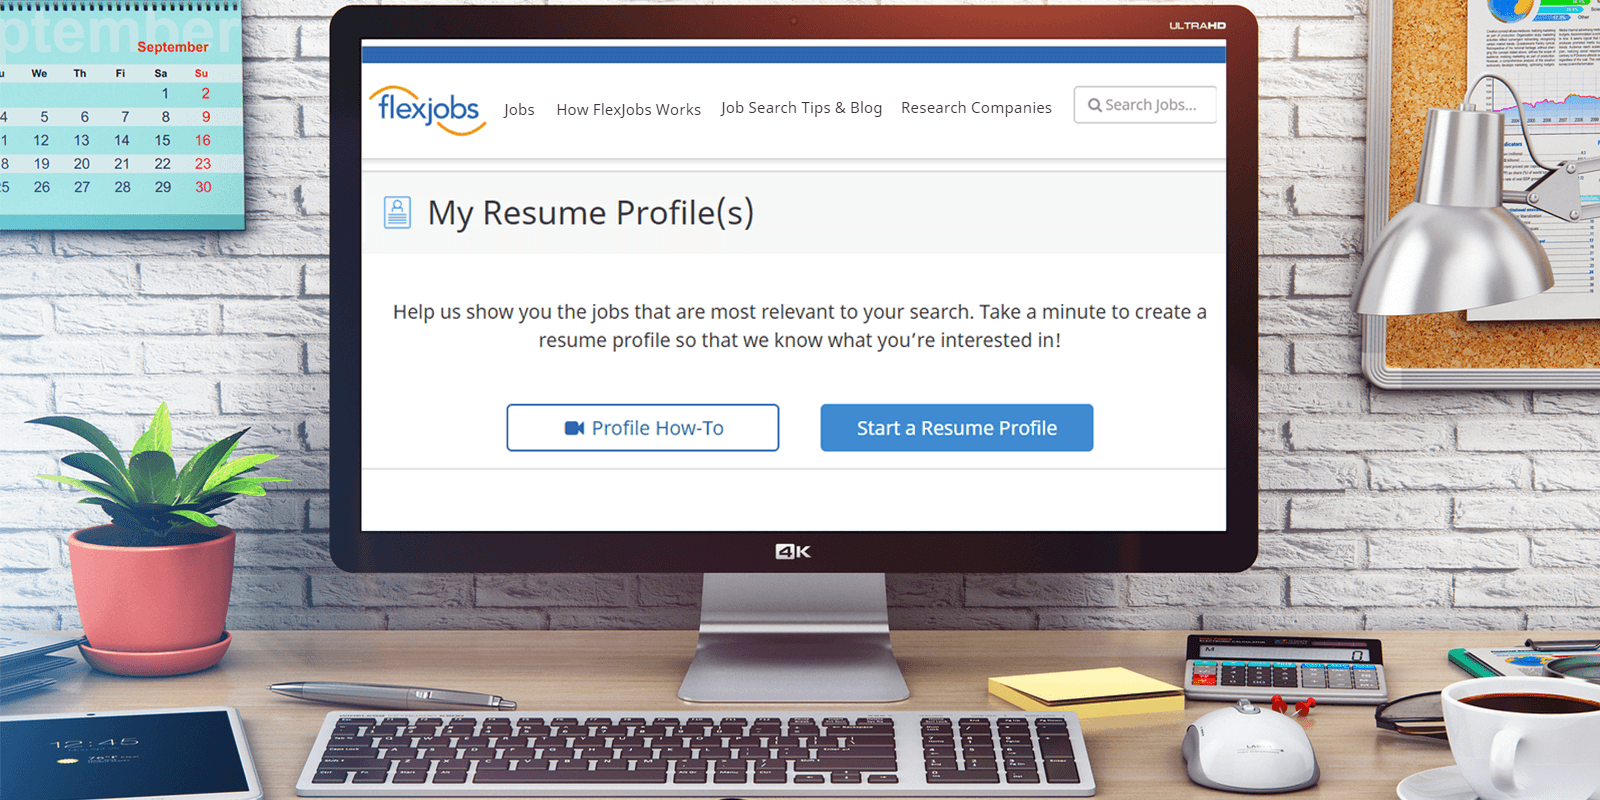 how to create a flexjobs resume profile  video